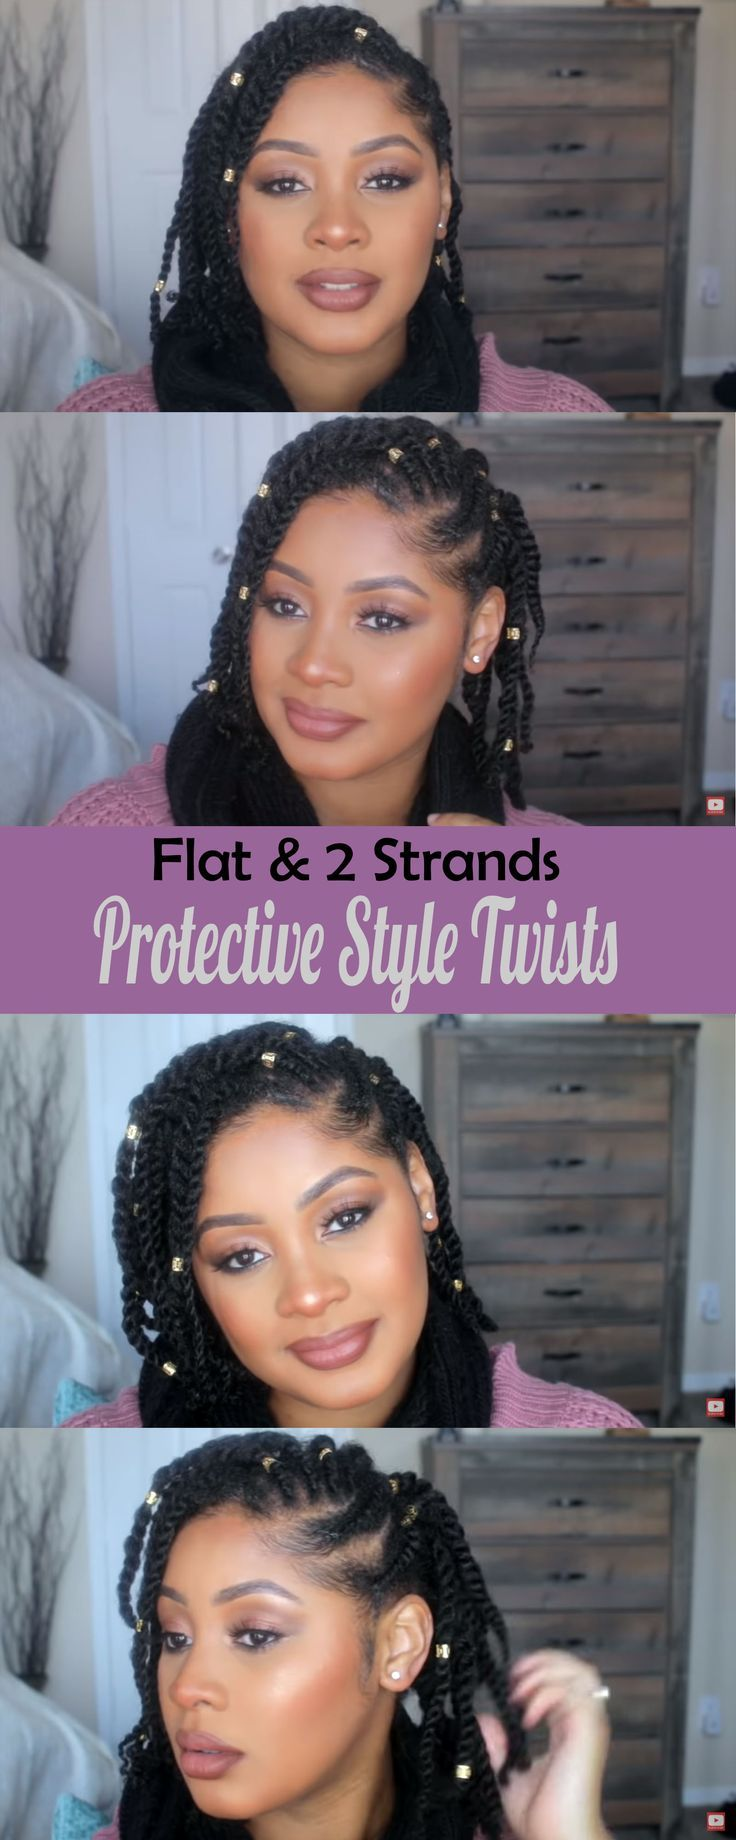 25+ Protective styles for natural hair at night ideas in 2021